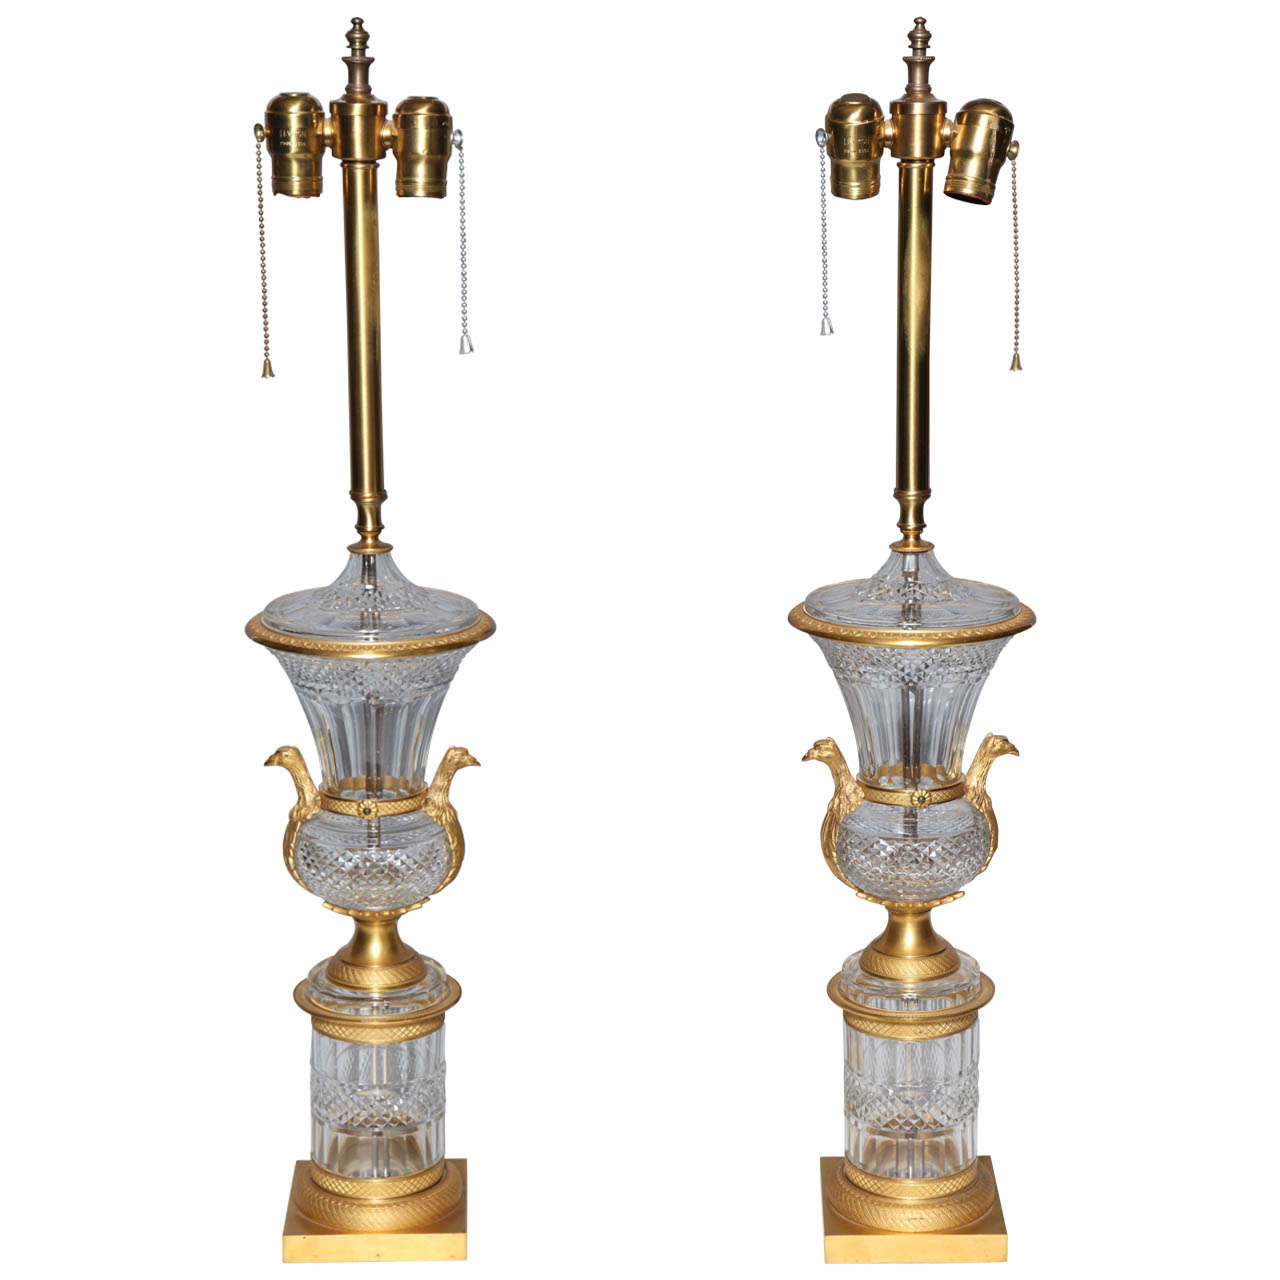 Exquisite pair of antique french crystal and dore bronze mounted urns lamps for sale at 1stdibs - Italian garden design ideas to make exquisite roman era garden ...